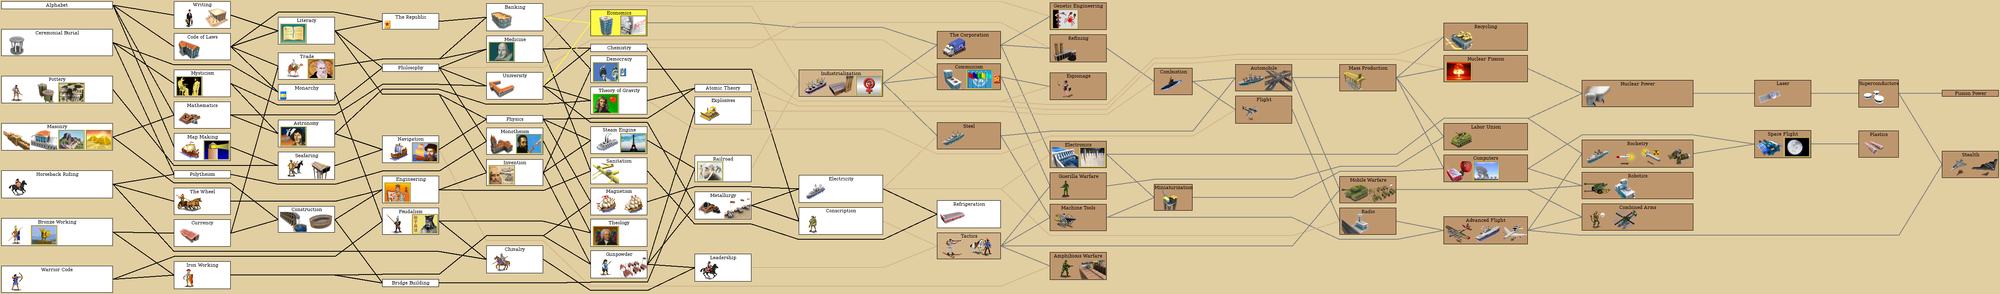 Freeciv-2.1.8 technology tree.png